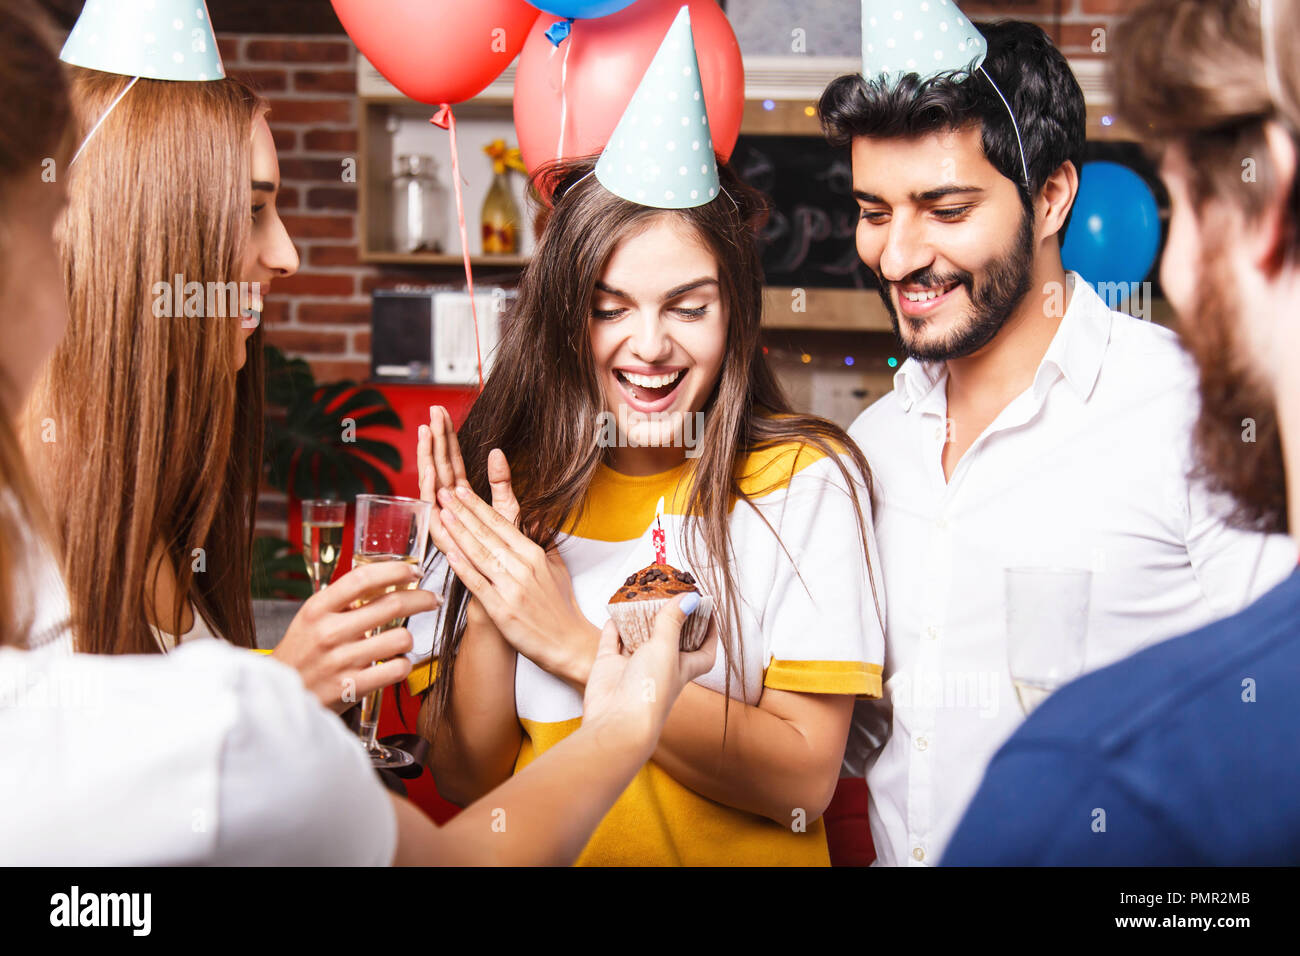 Friends congratulates brunette birthday girl in party hat with cupcake, she feeling surprised - Stock Image